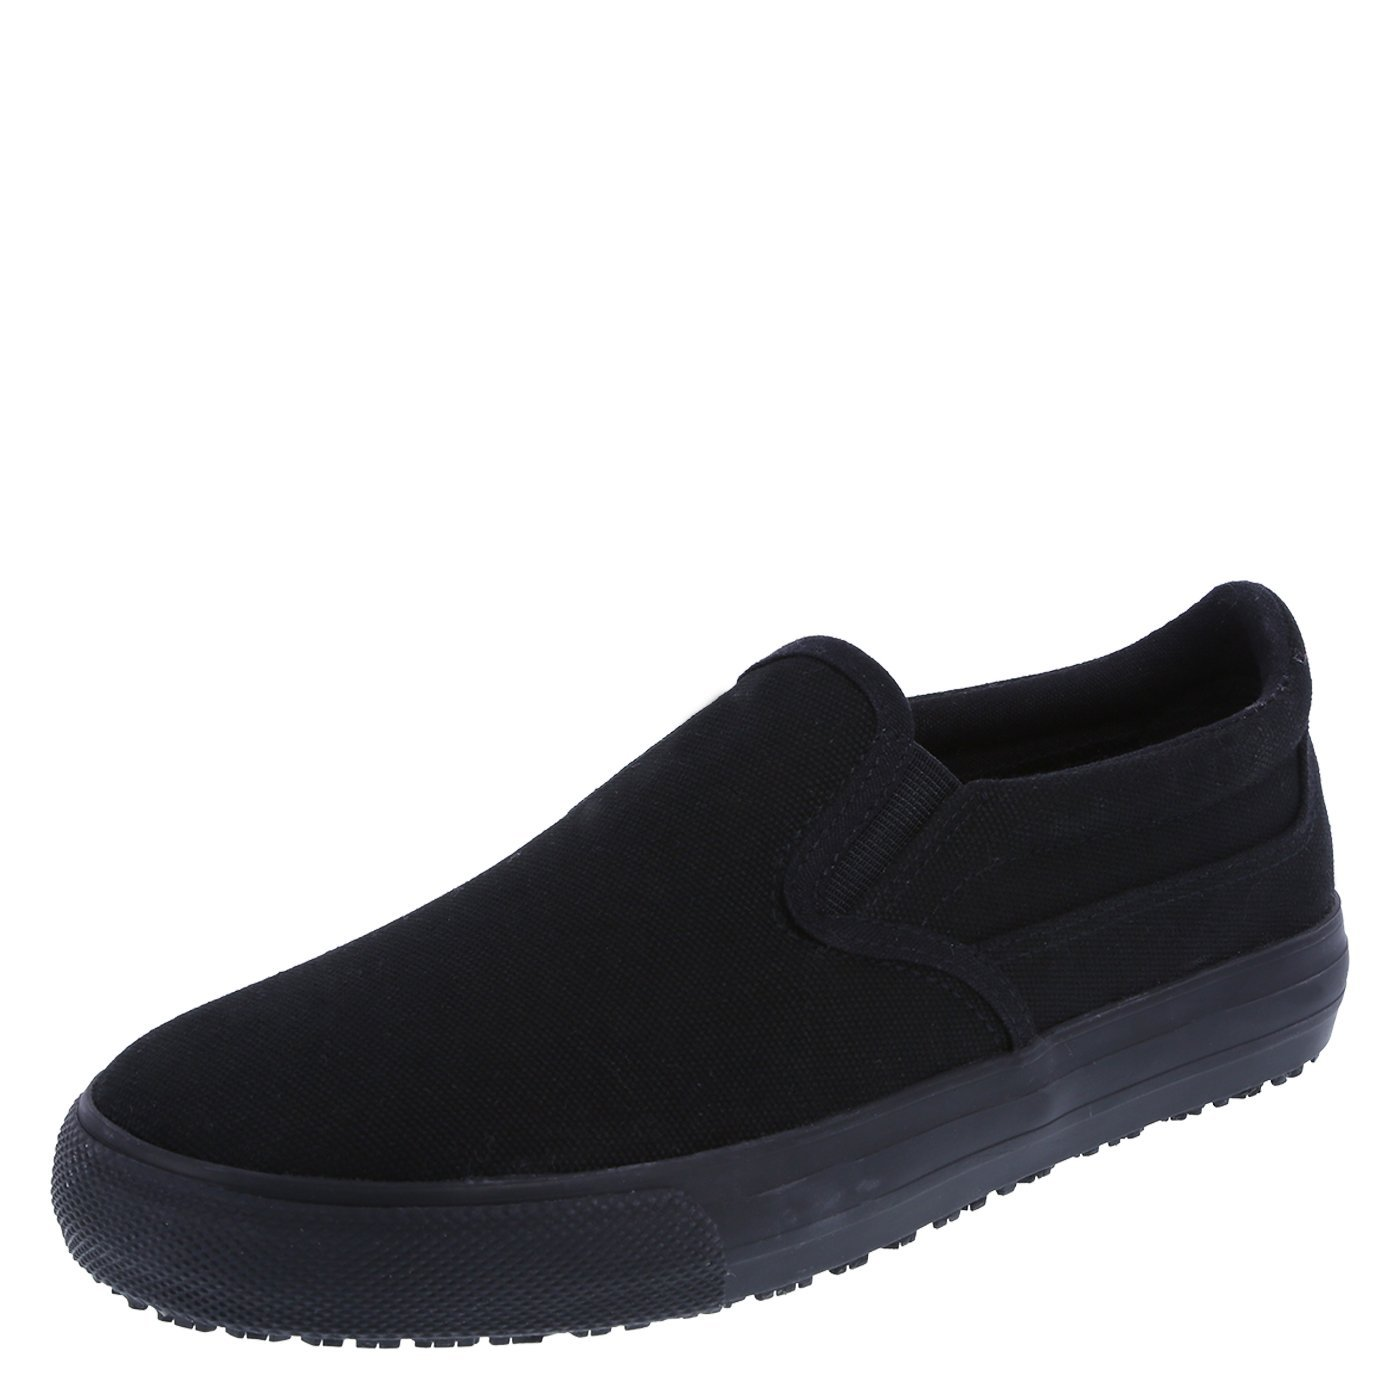 safeTstep Women's Black Canvas Slip Resistant Jen Slip-On 9.5 Regular